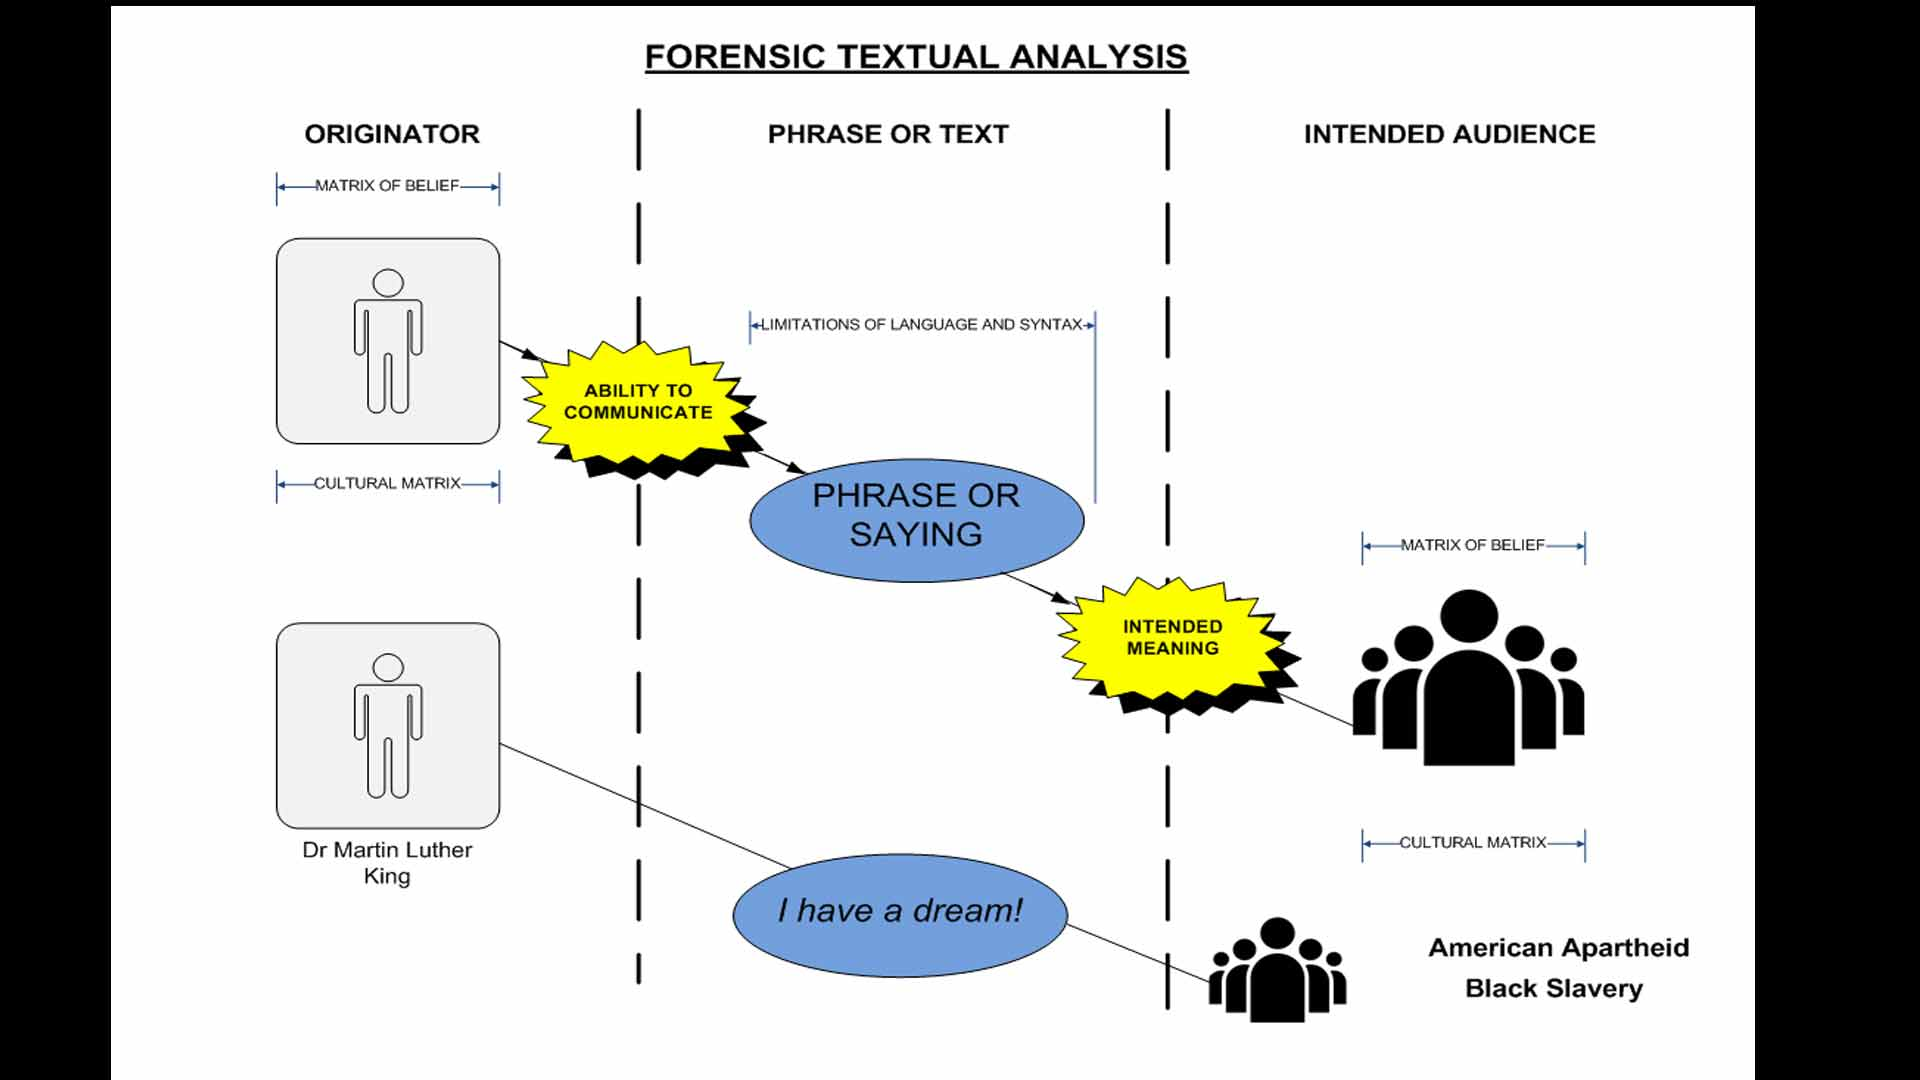 forensic textual analysis